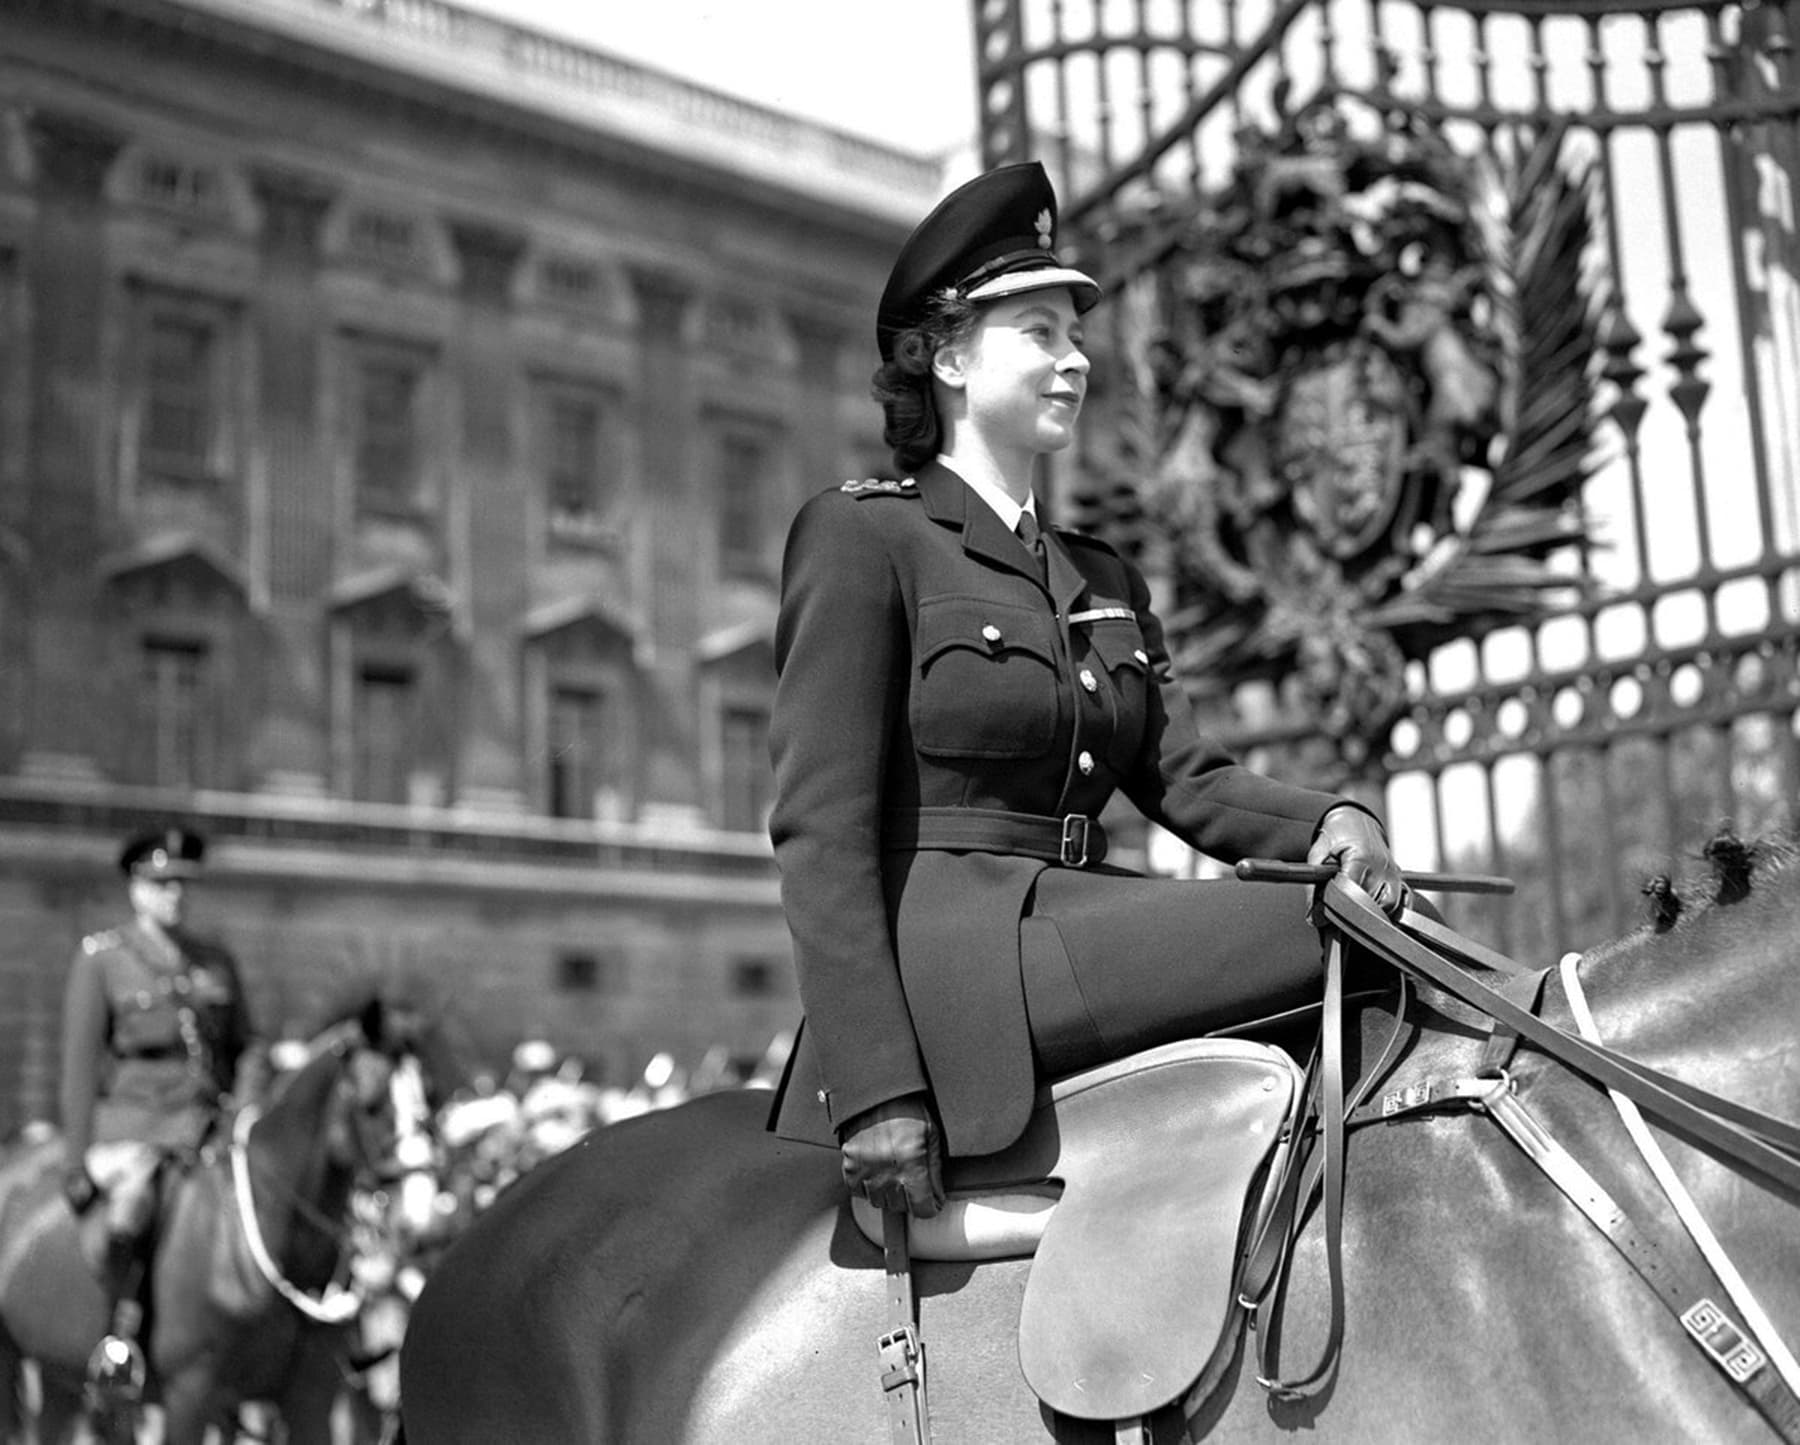 The Queen (then Princess Elizabeth) taking part in her first Trooping The Colour parade in 1947. — Photo courtesy @RoyalFamily